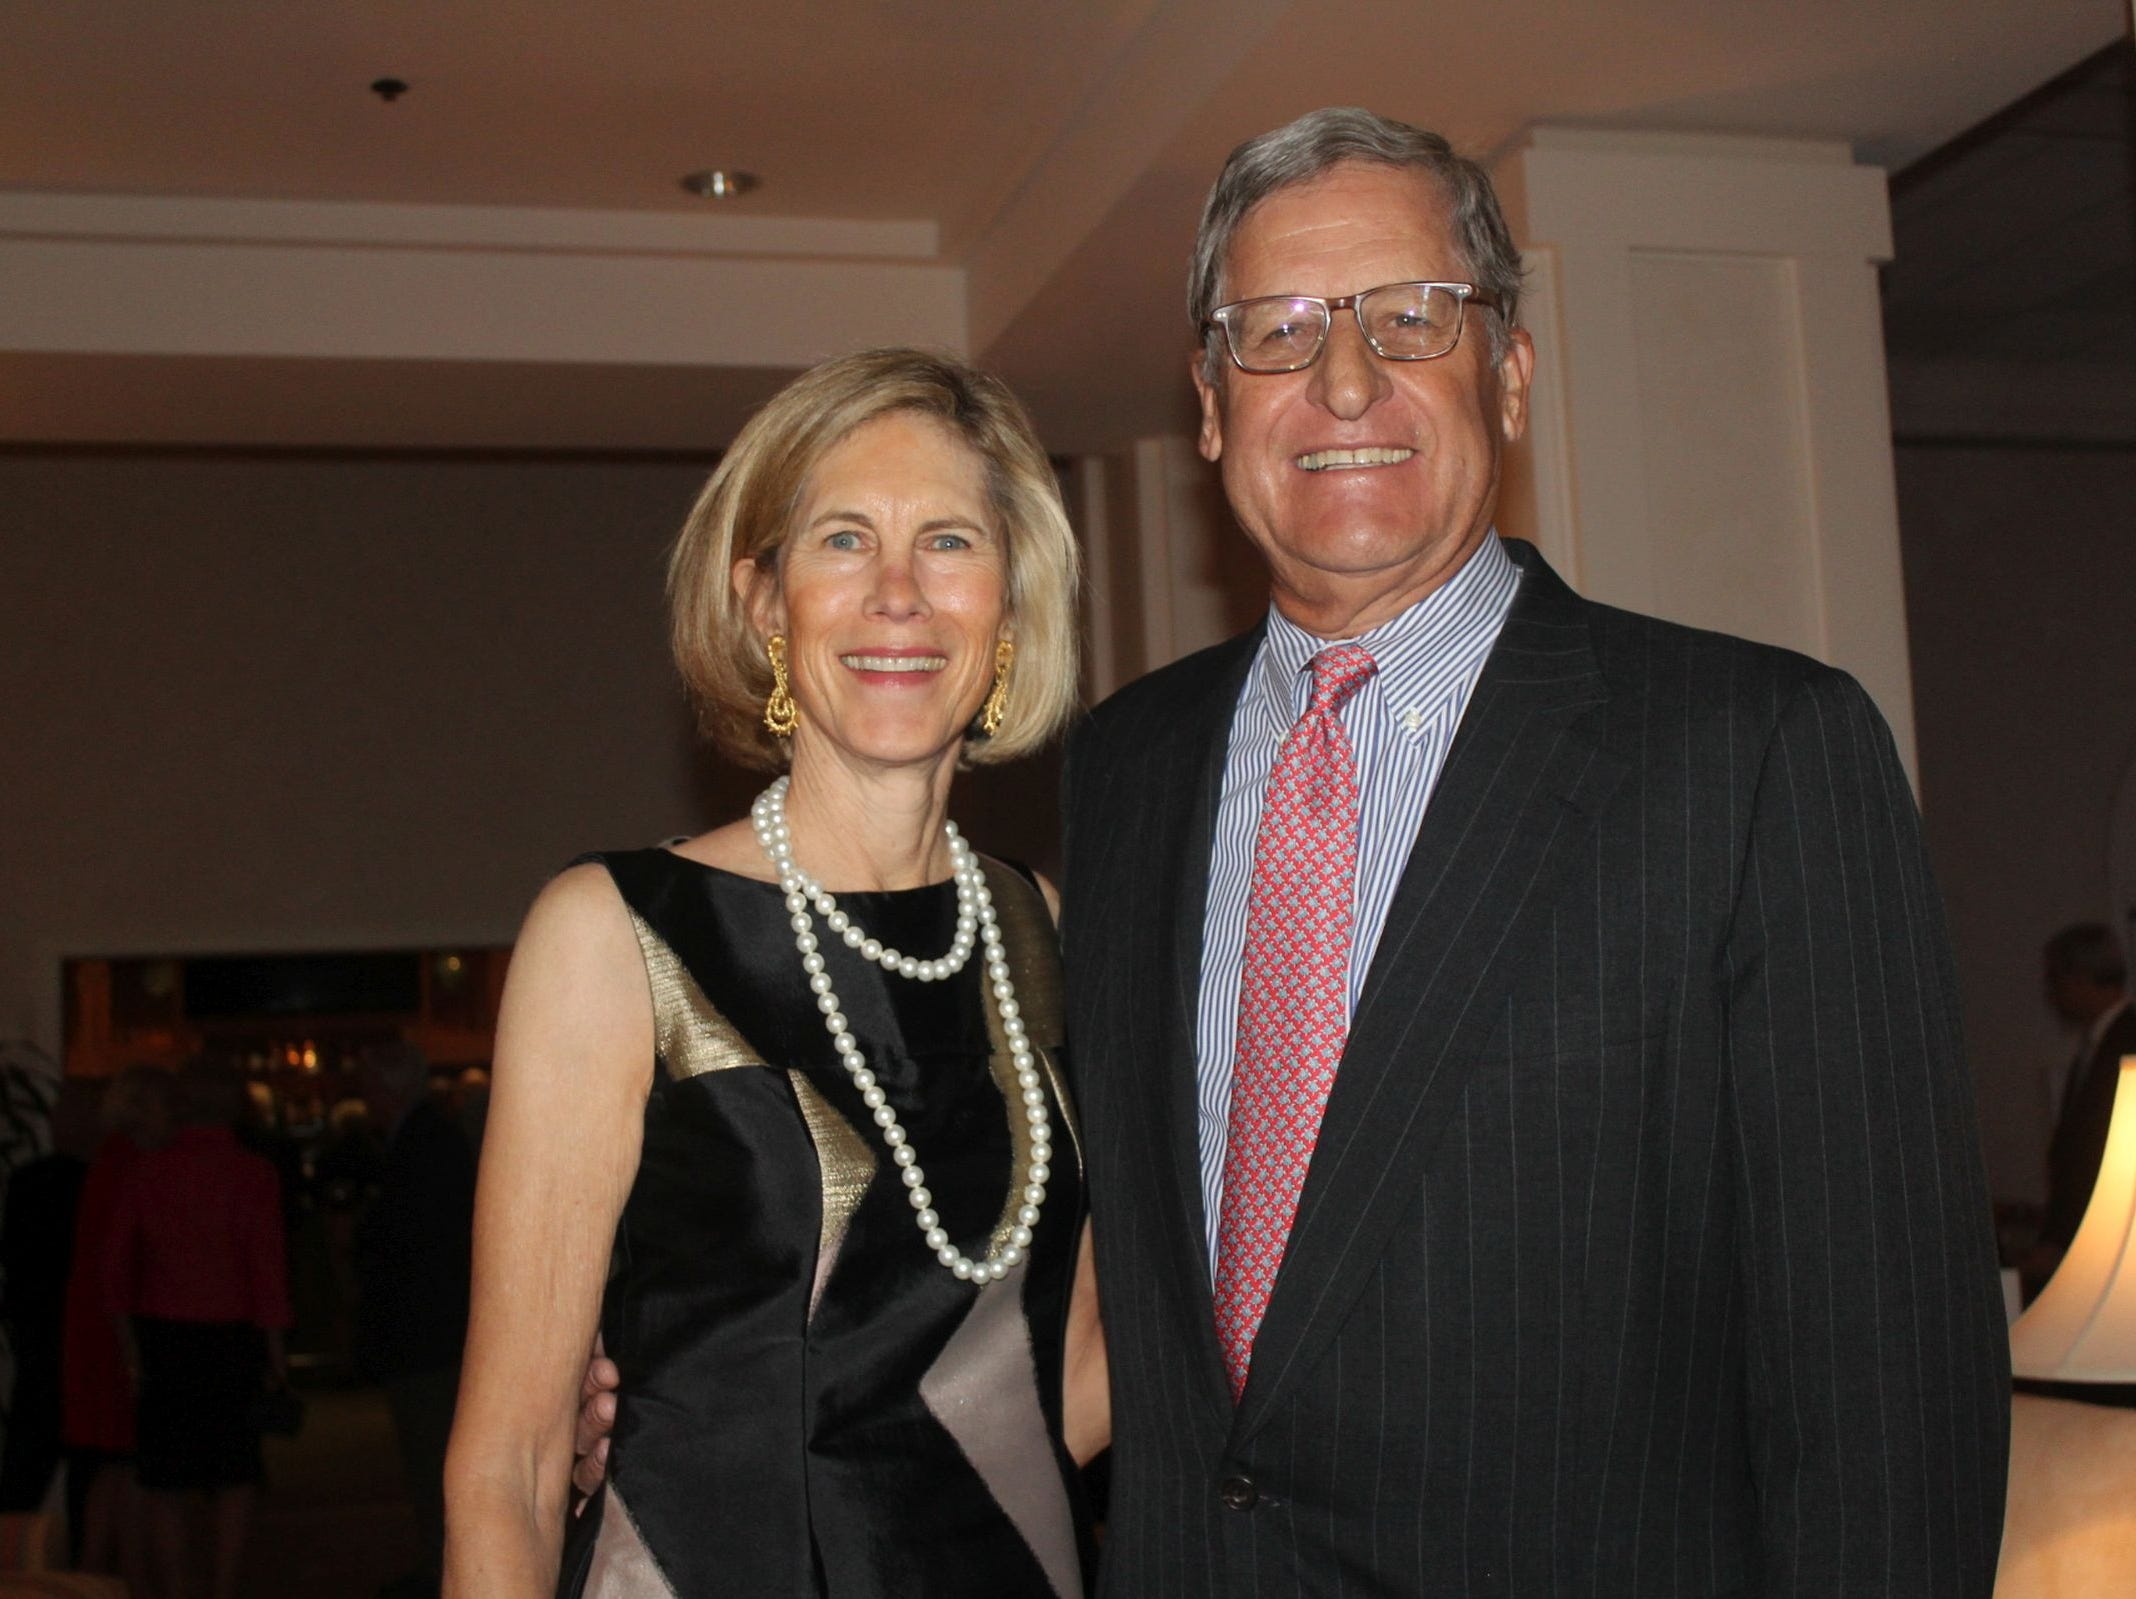 Debbie and Ted Berghorst at the Gifford Youth Achievement Center's Snow Ball on Jan. 26.